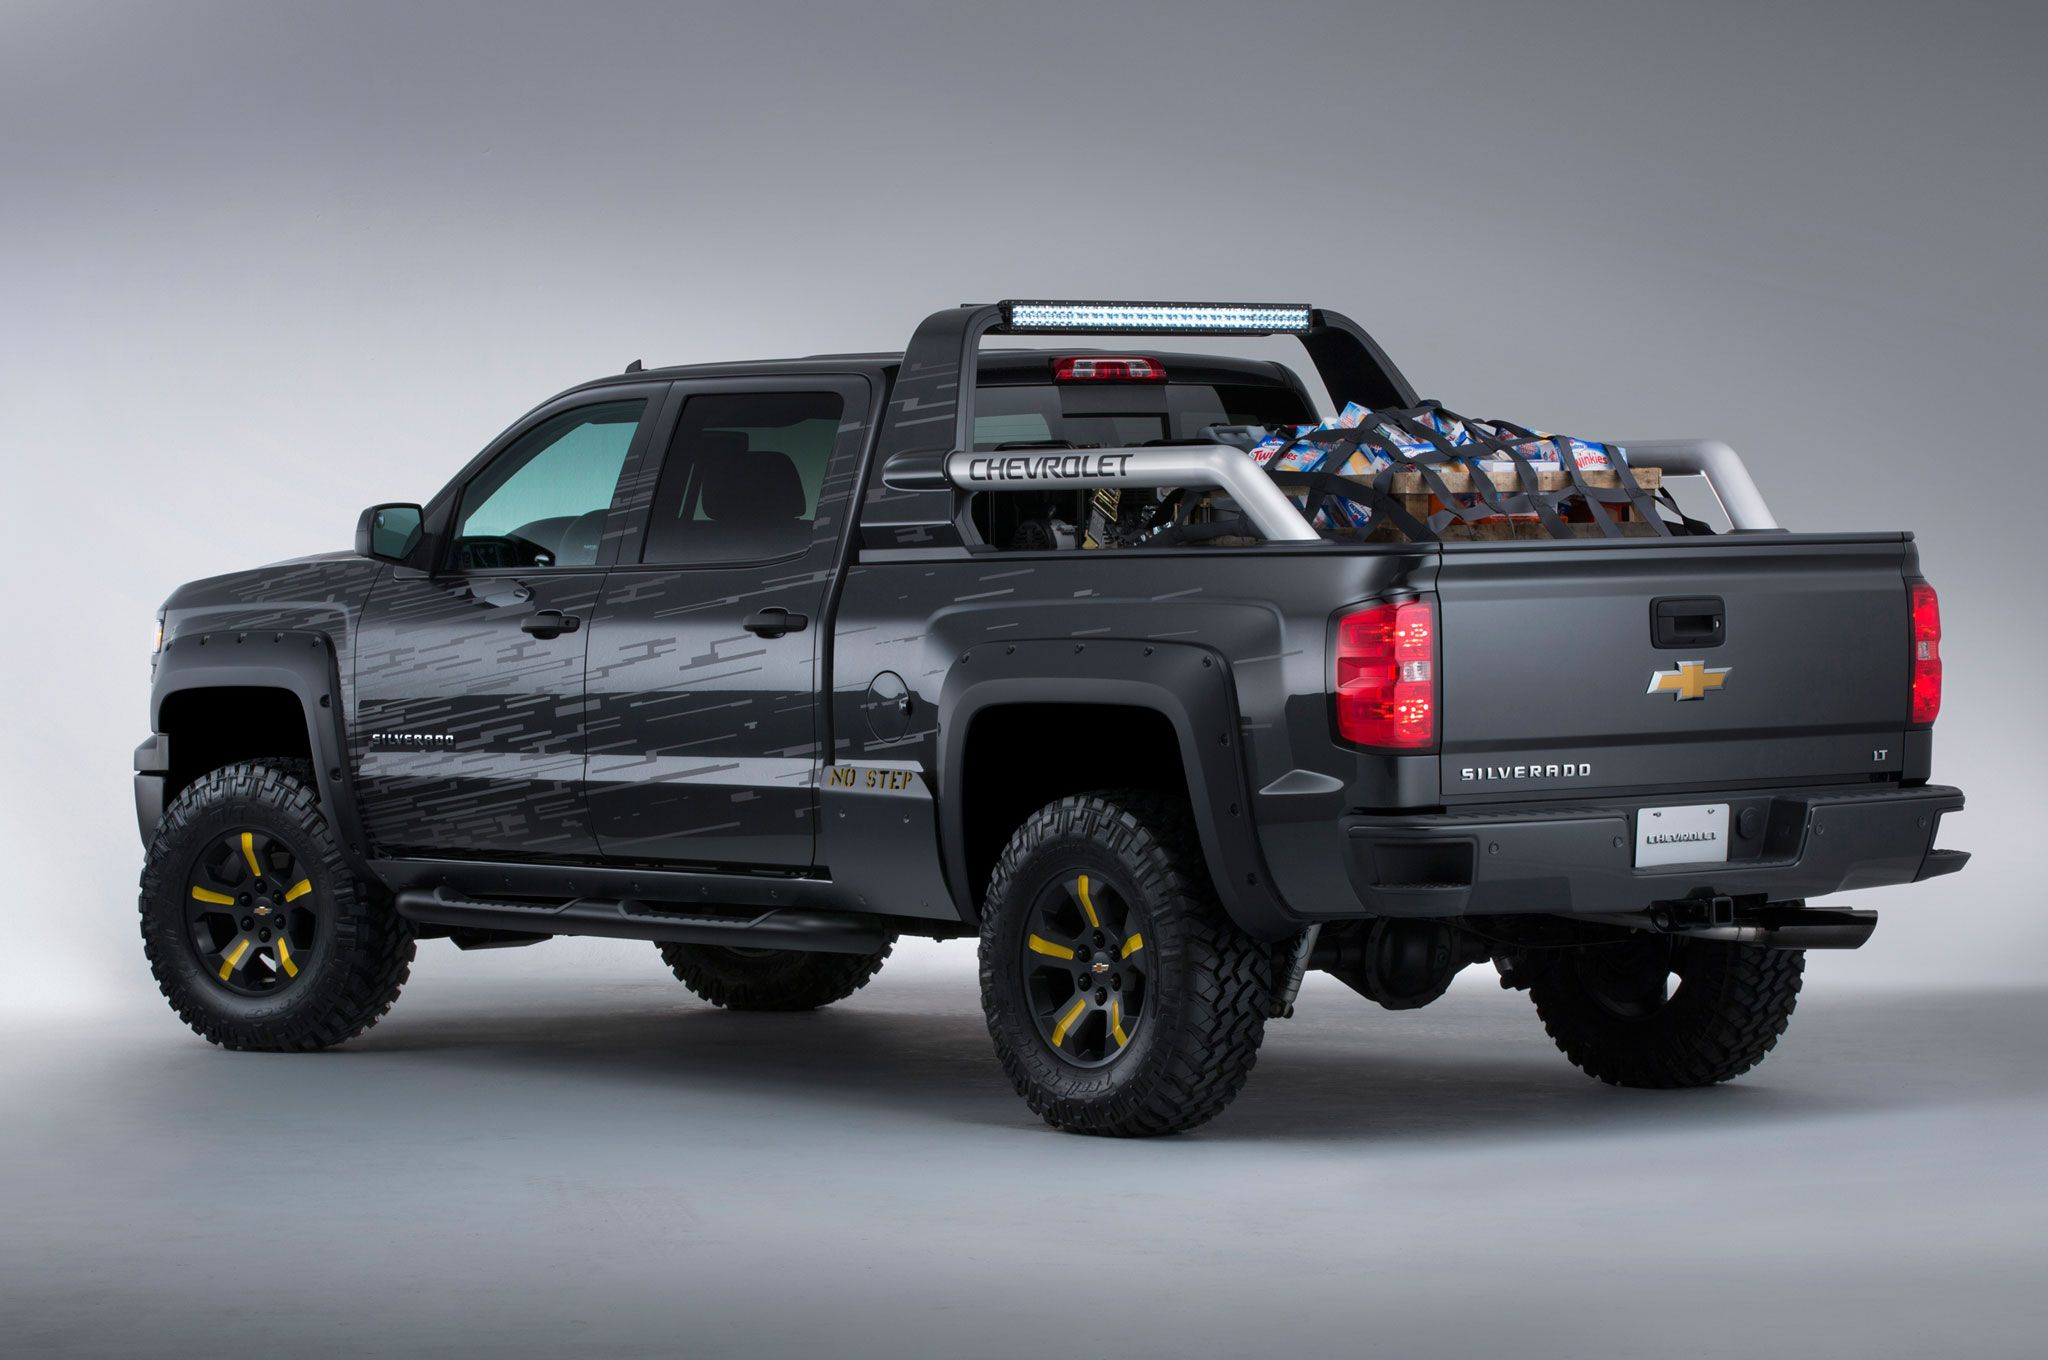 This 2014 chevy silverado black ops concept sema truck is the ultimate survival machine taking disaster preparedness to the next level